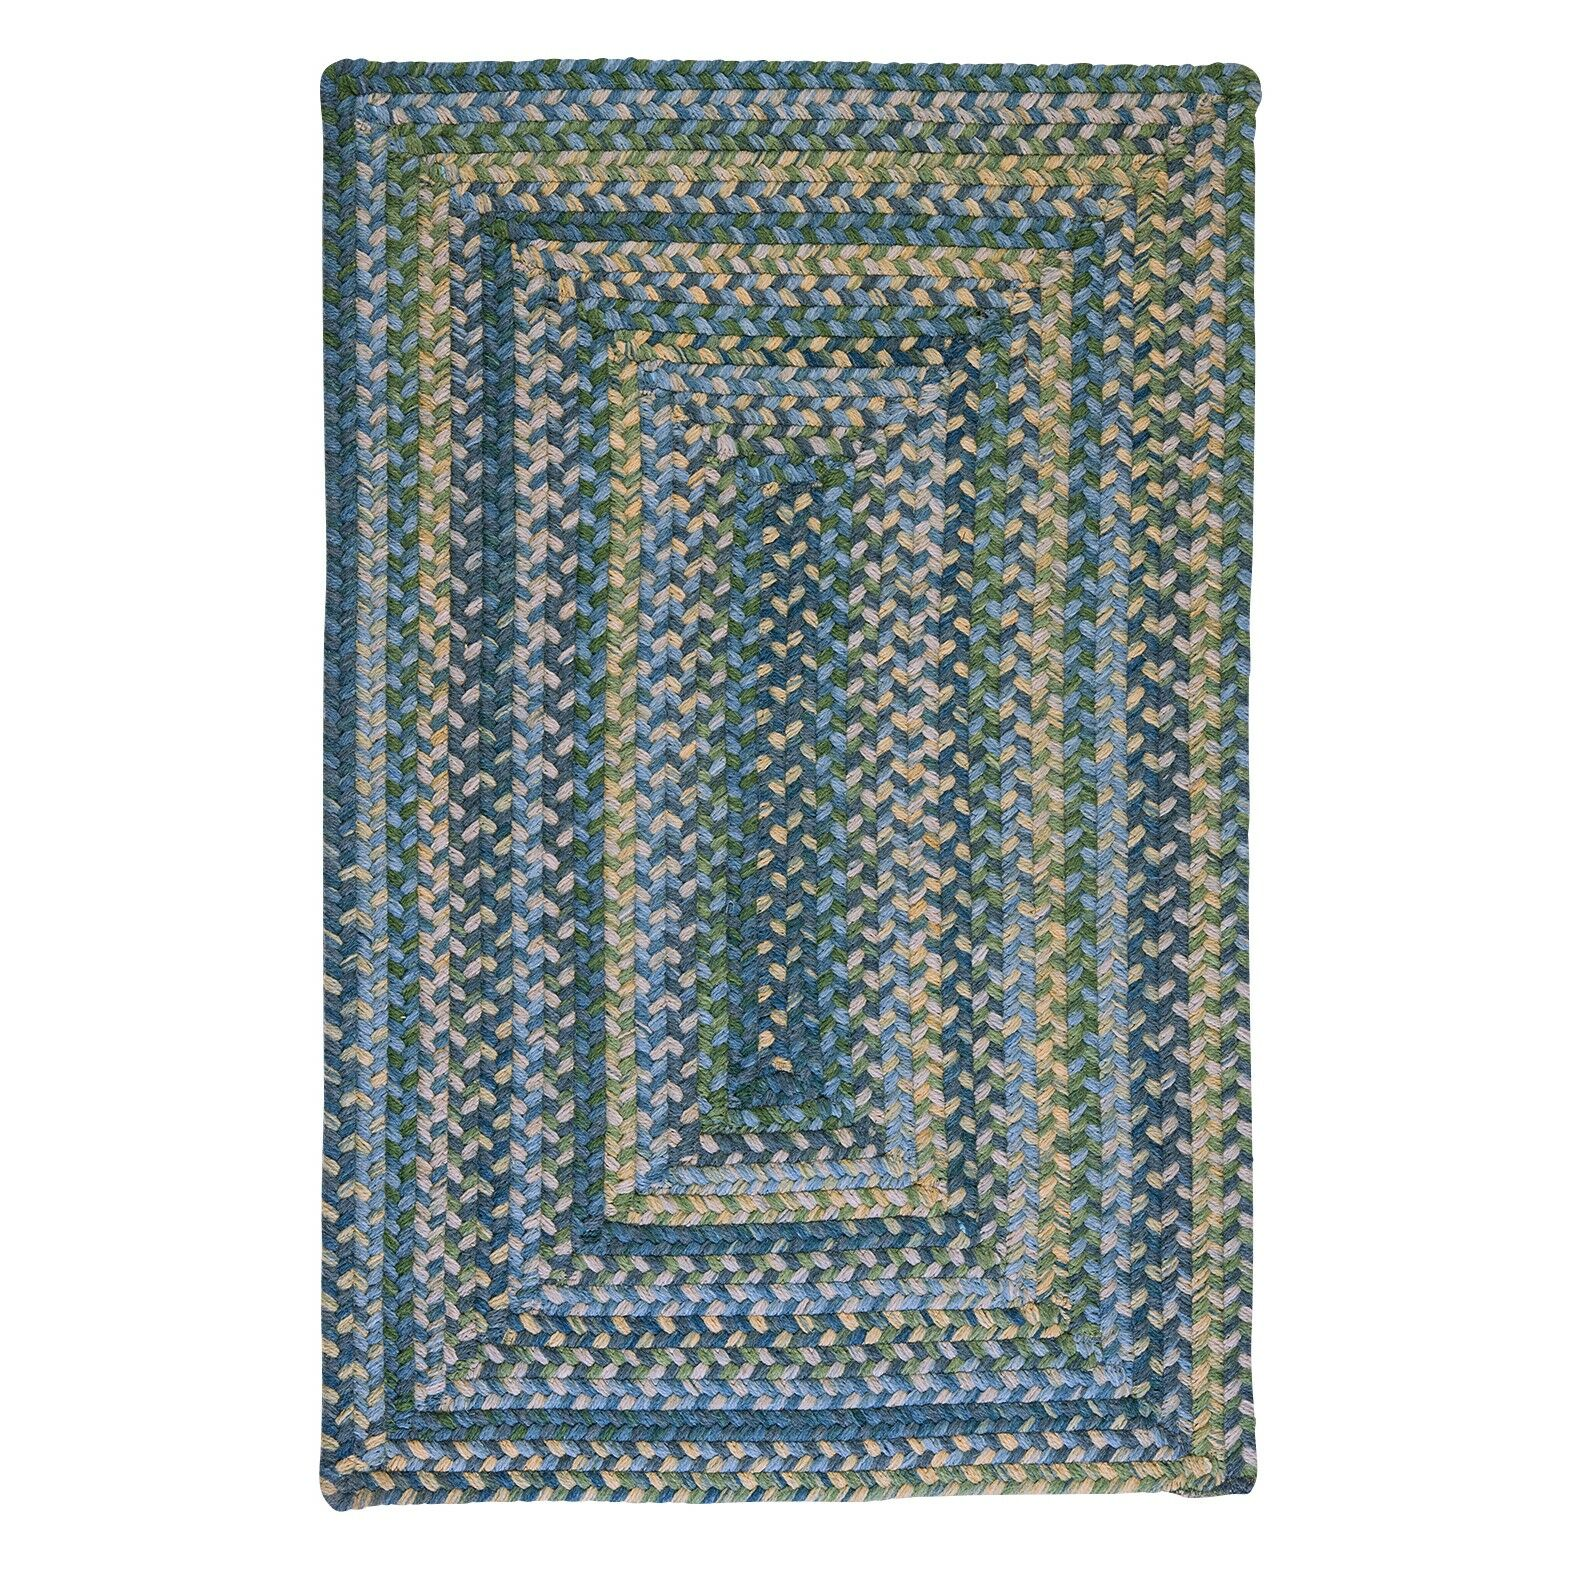 Ridgevale Whipple Green Area Rug Rug Size: Rectangle 2' x 4'